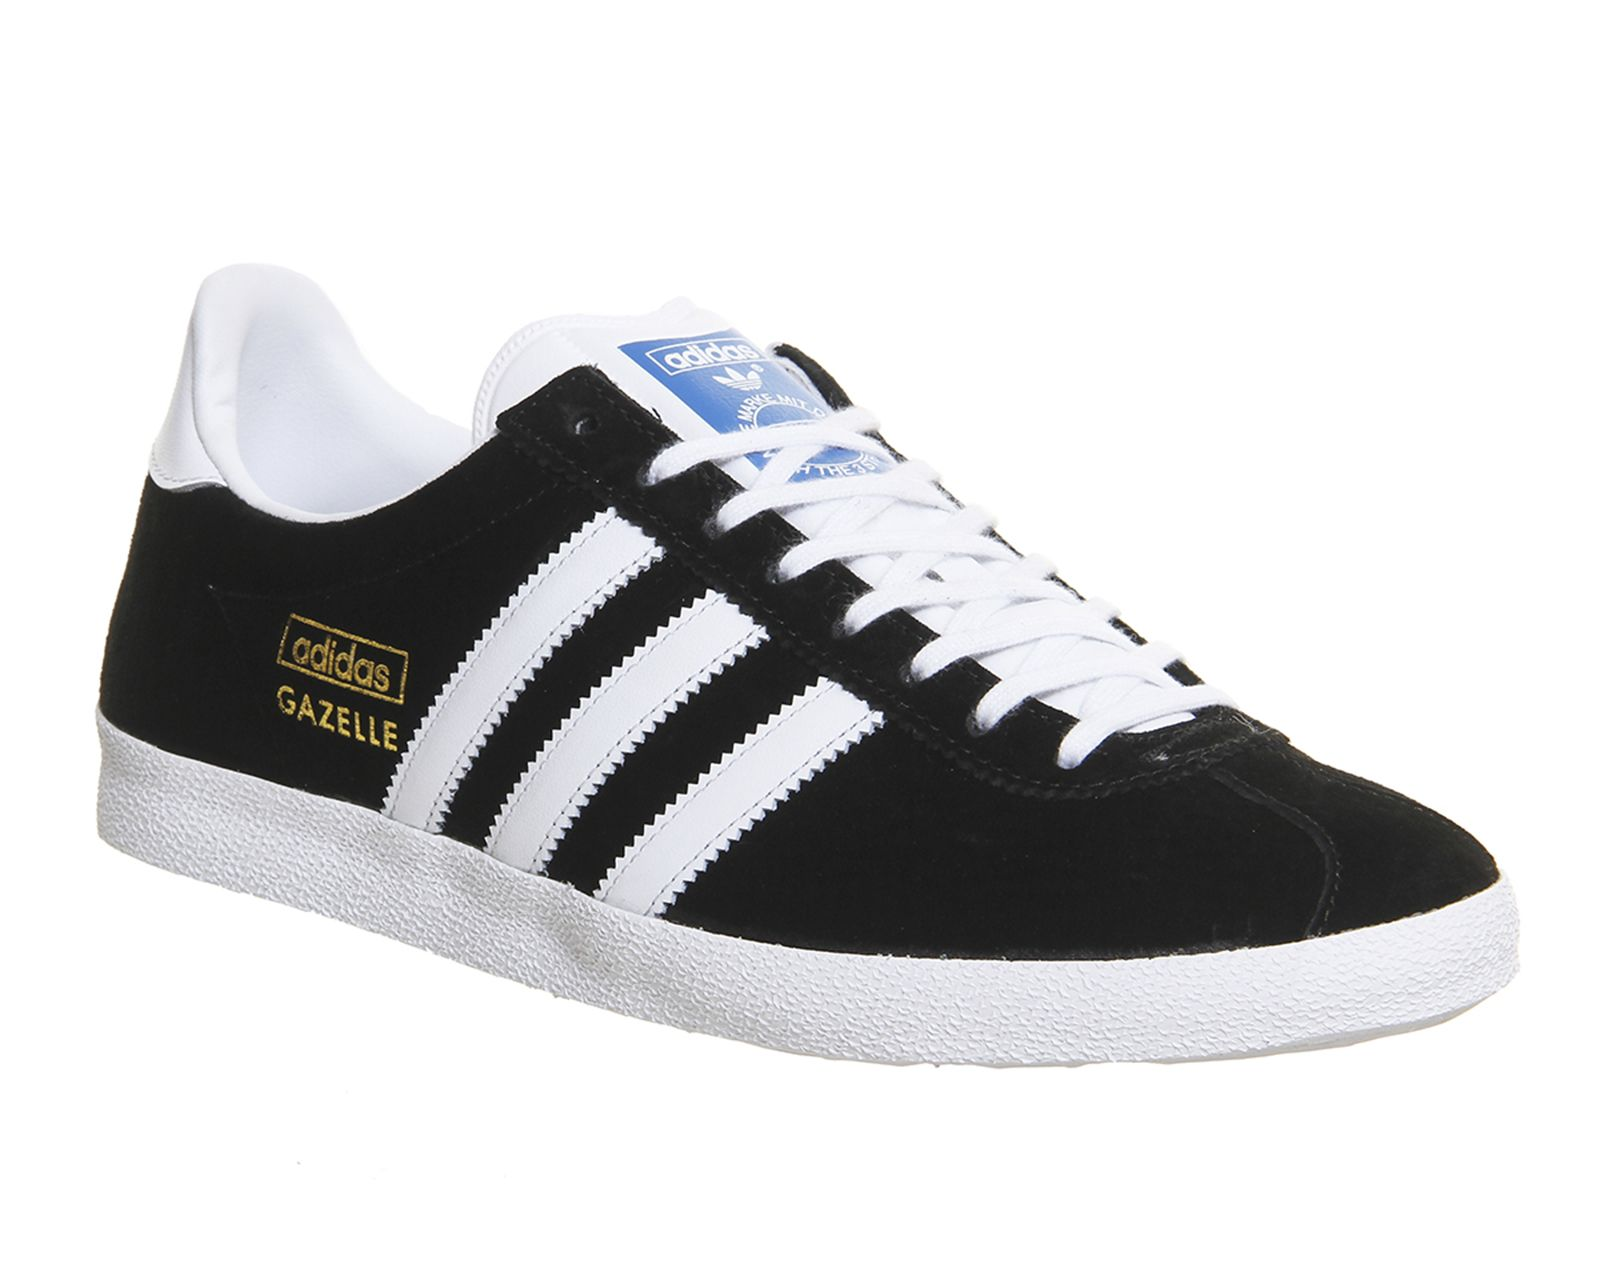 Adidas Gazelle Og Black White Metallic Gold  Unisex Sports  Gold TrainersSports  TrainersShoes